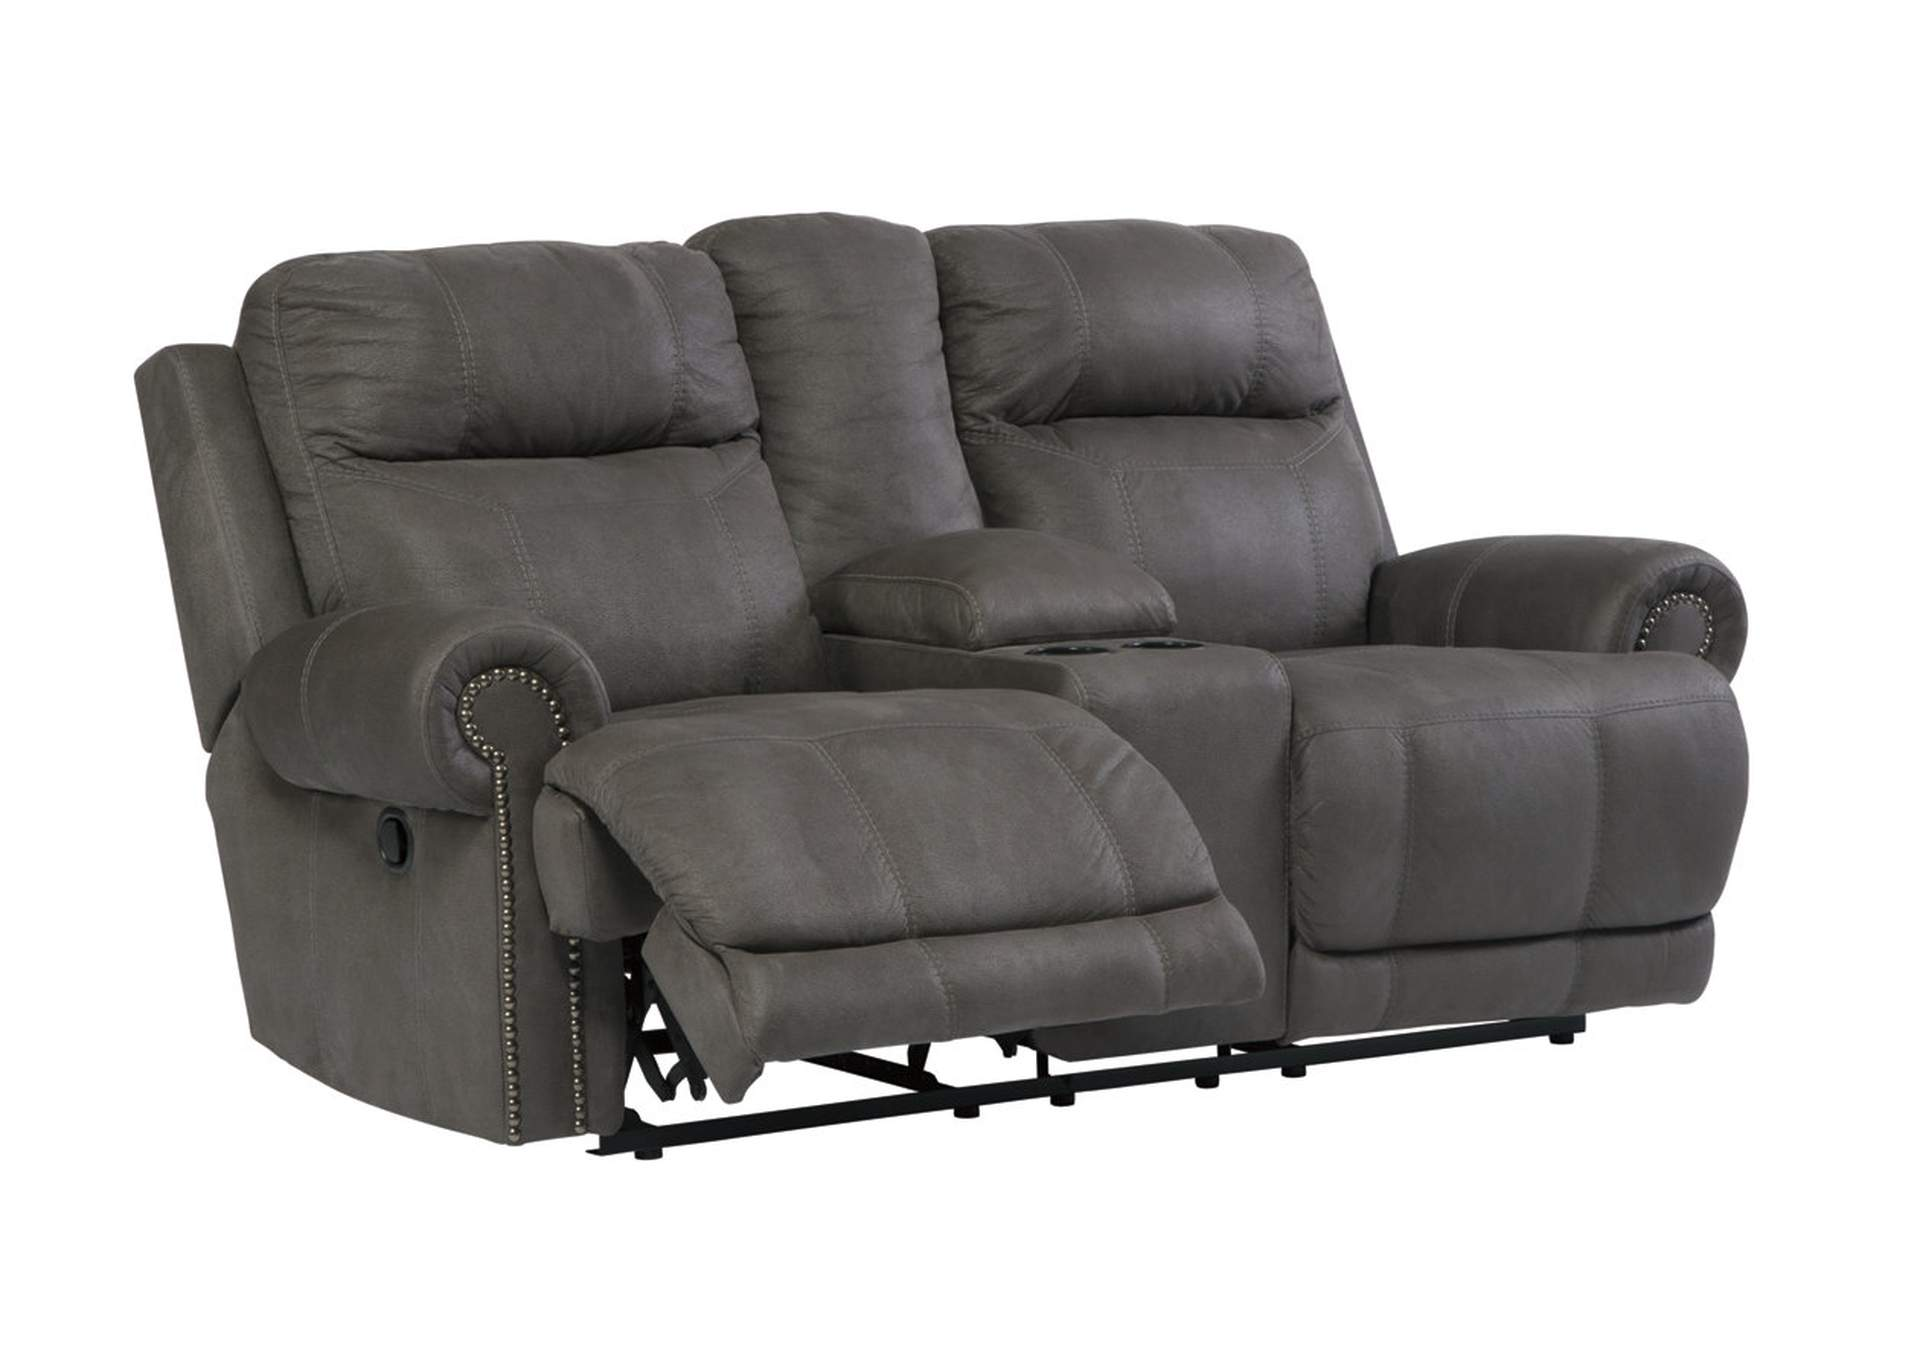 Austere Gray Double Reclining Loveseat w/Console,Signature Design By Ashley